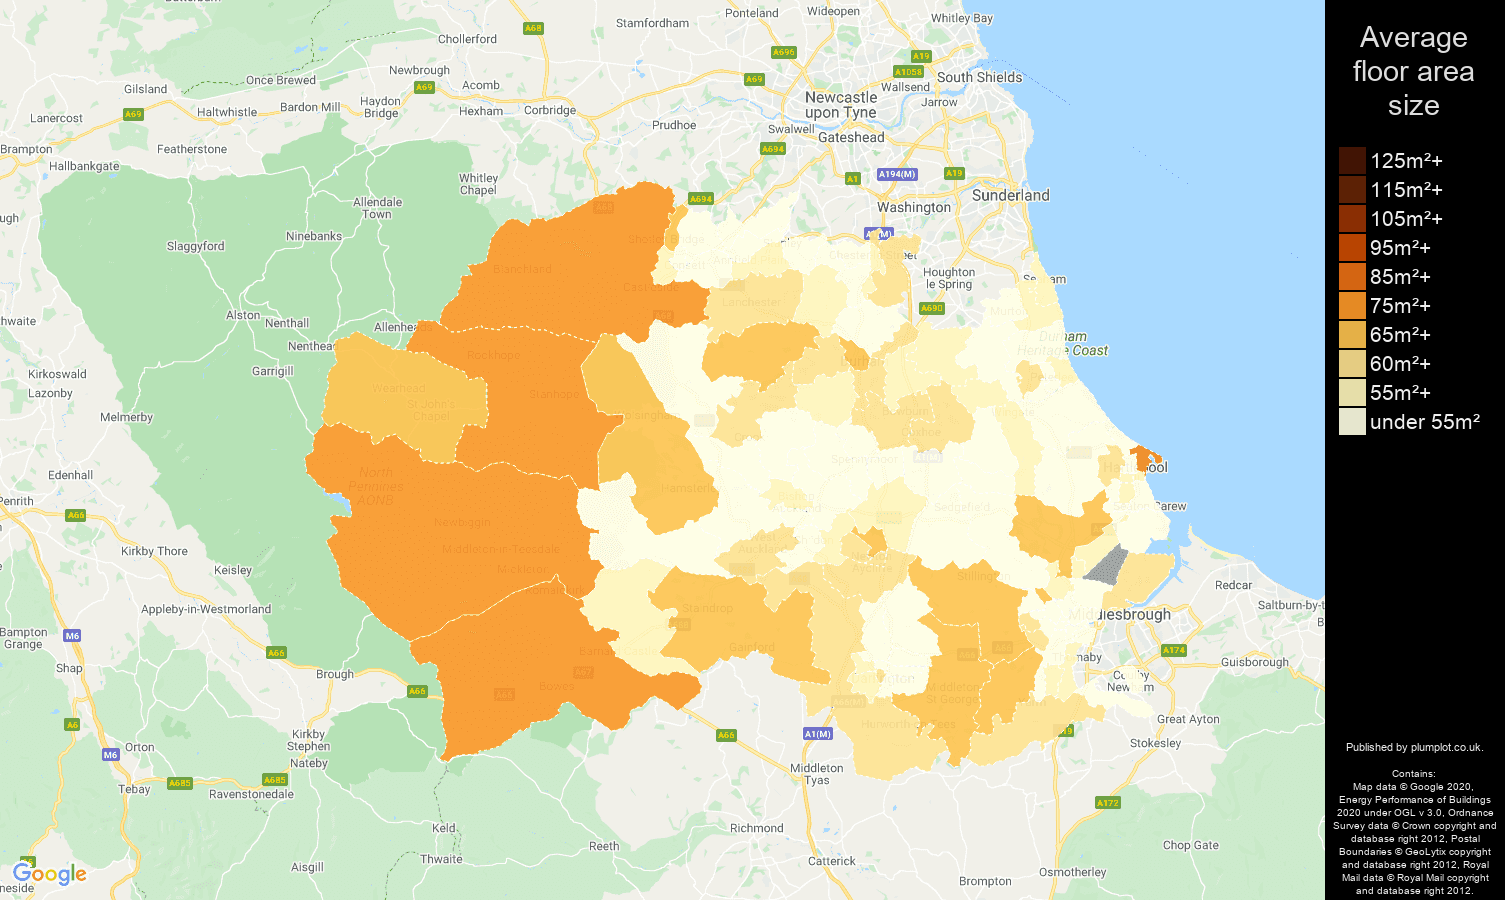 Durham county map of average floor area size of flats